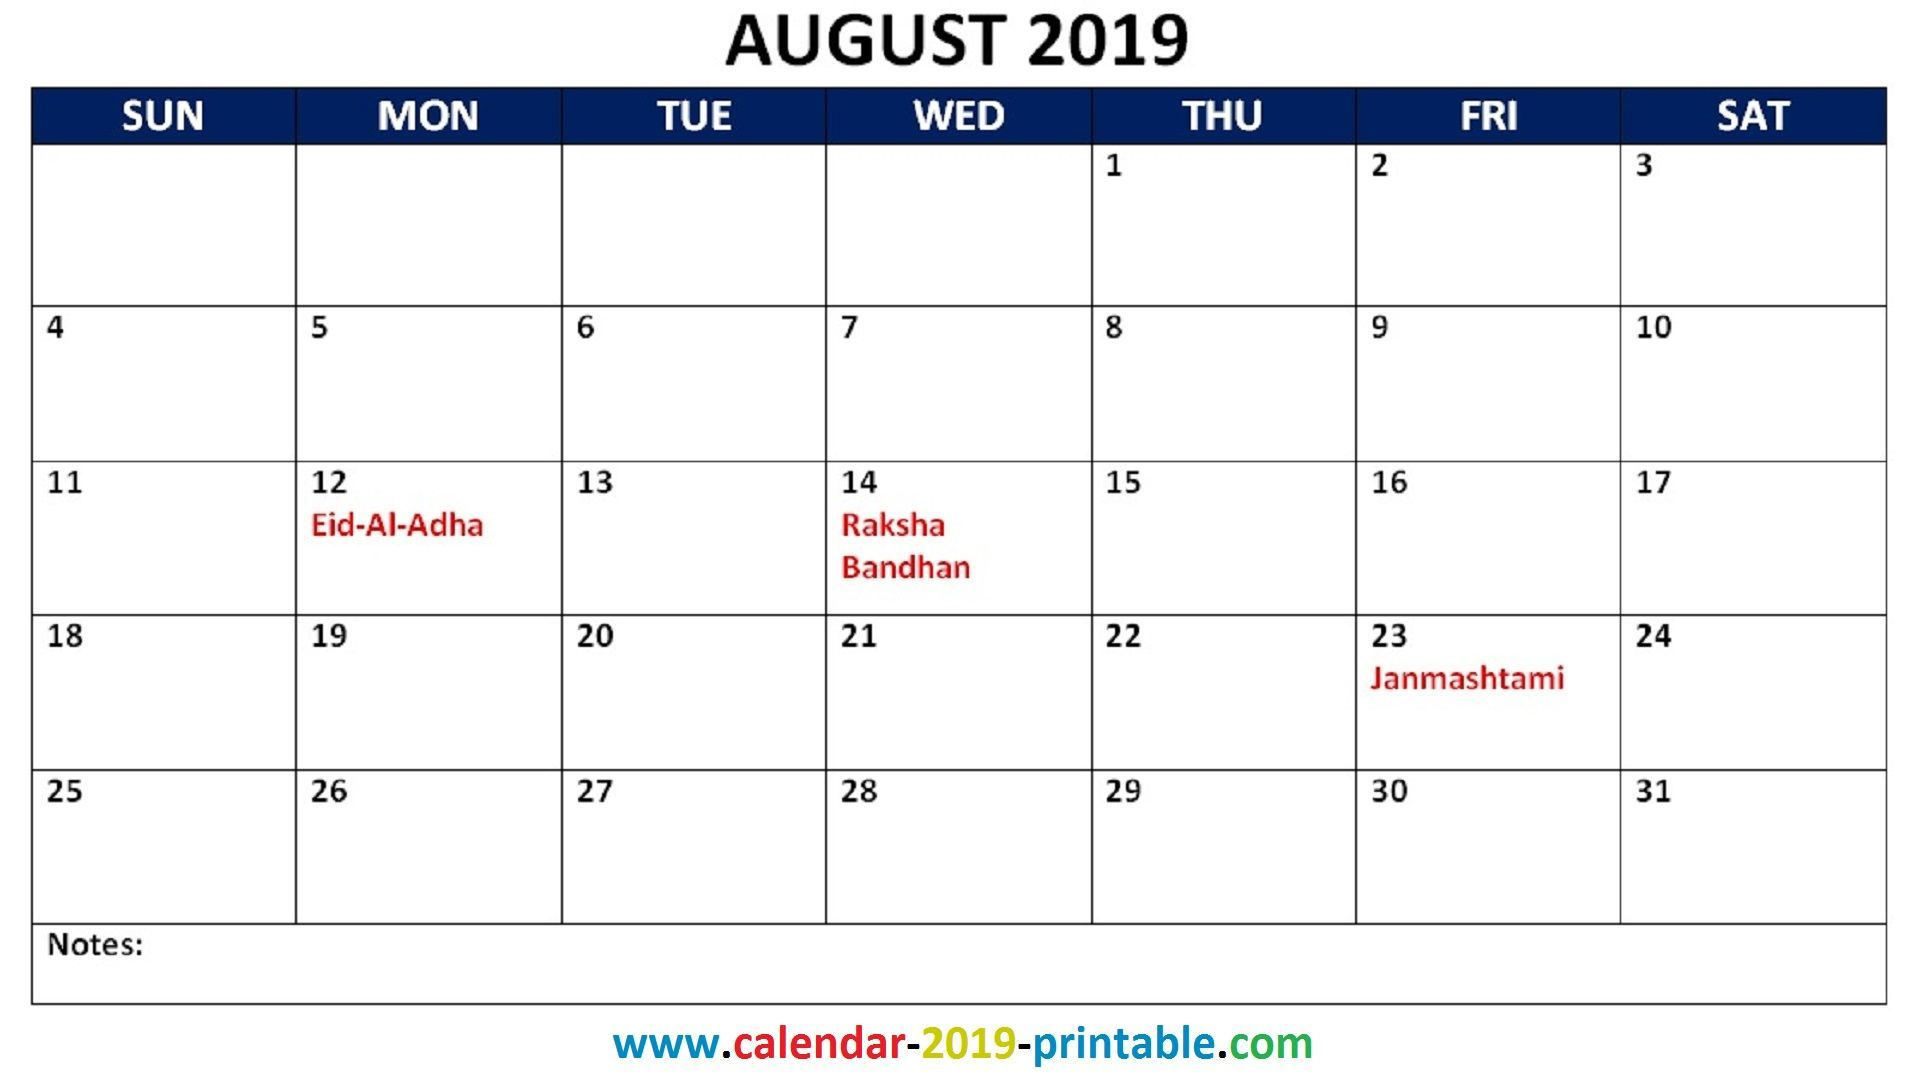 Free Printable 2019 Calendar With Uk Holidays.August 2019 Calendar With Holidays Printable Usa Uk Canada India Nz